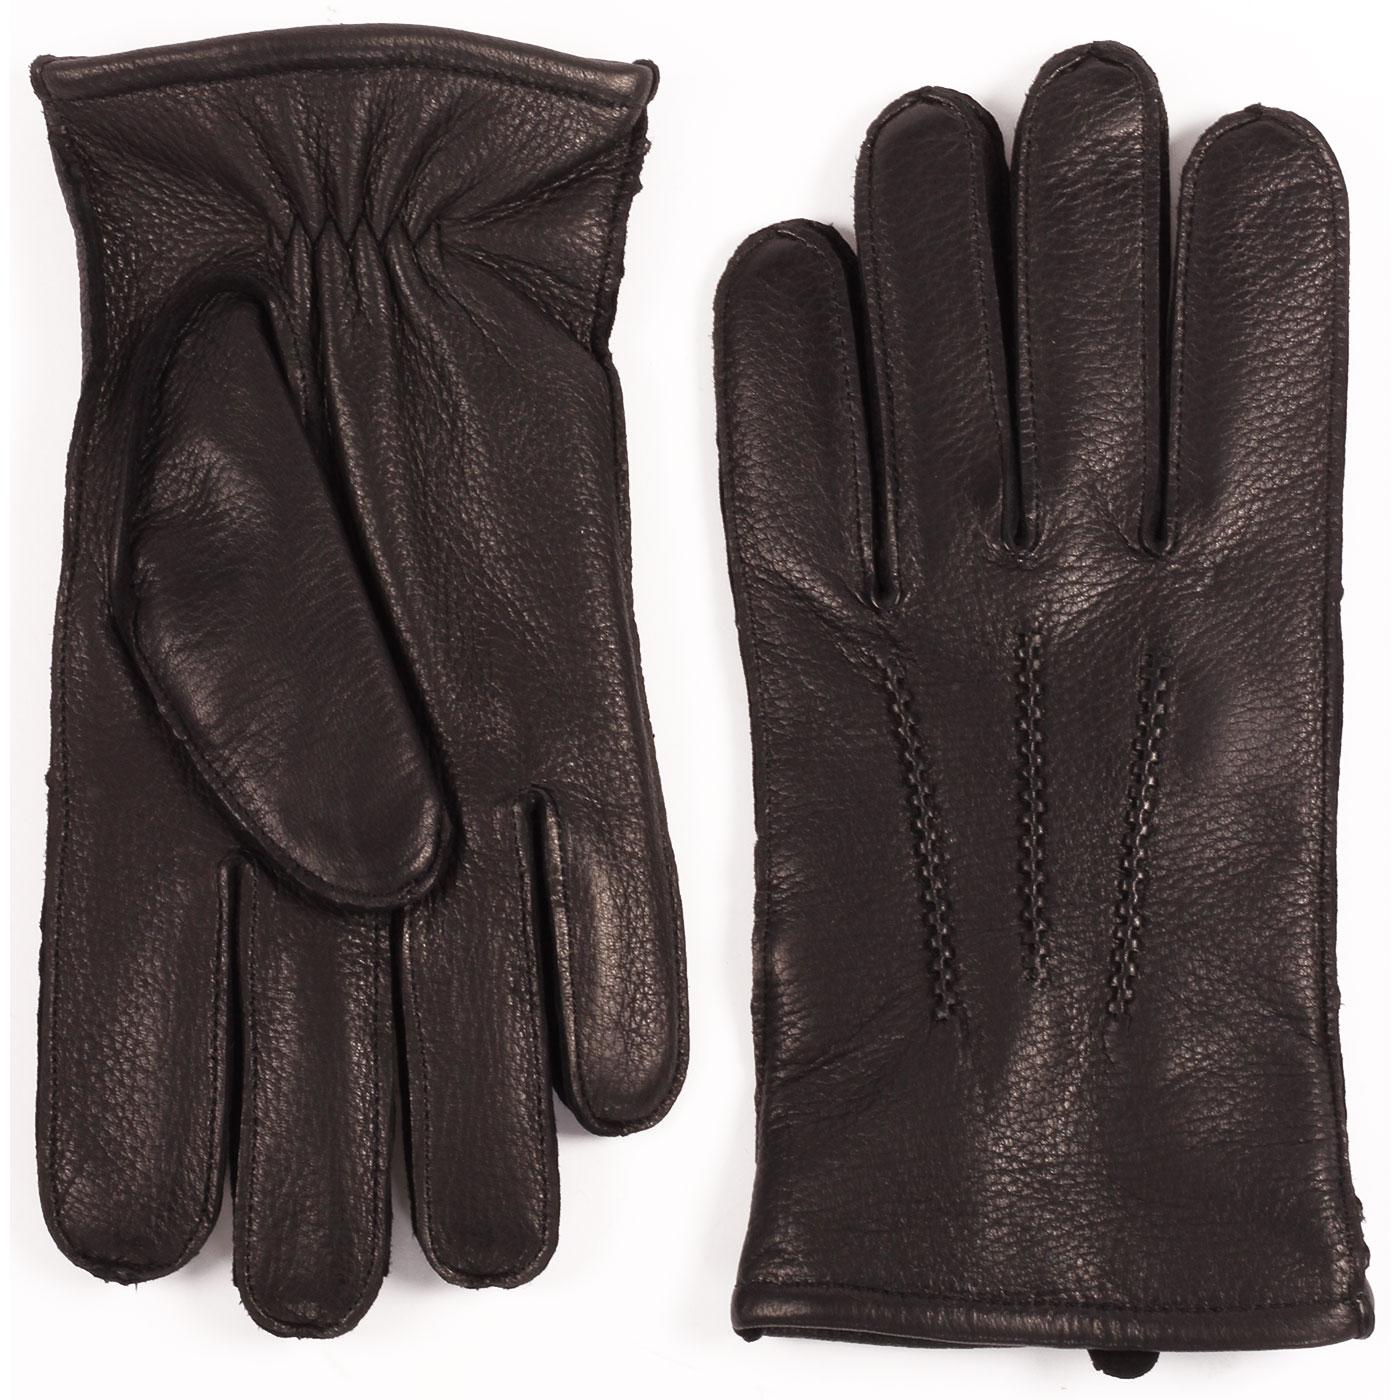 Winston FAILSWORTH Men's Retro Leather Gloves (B)